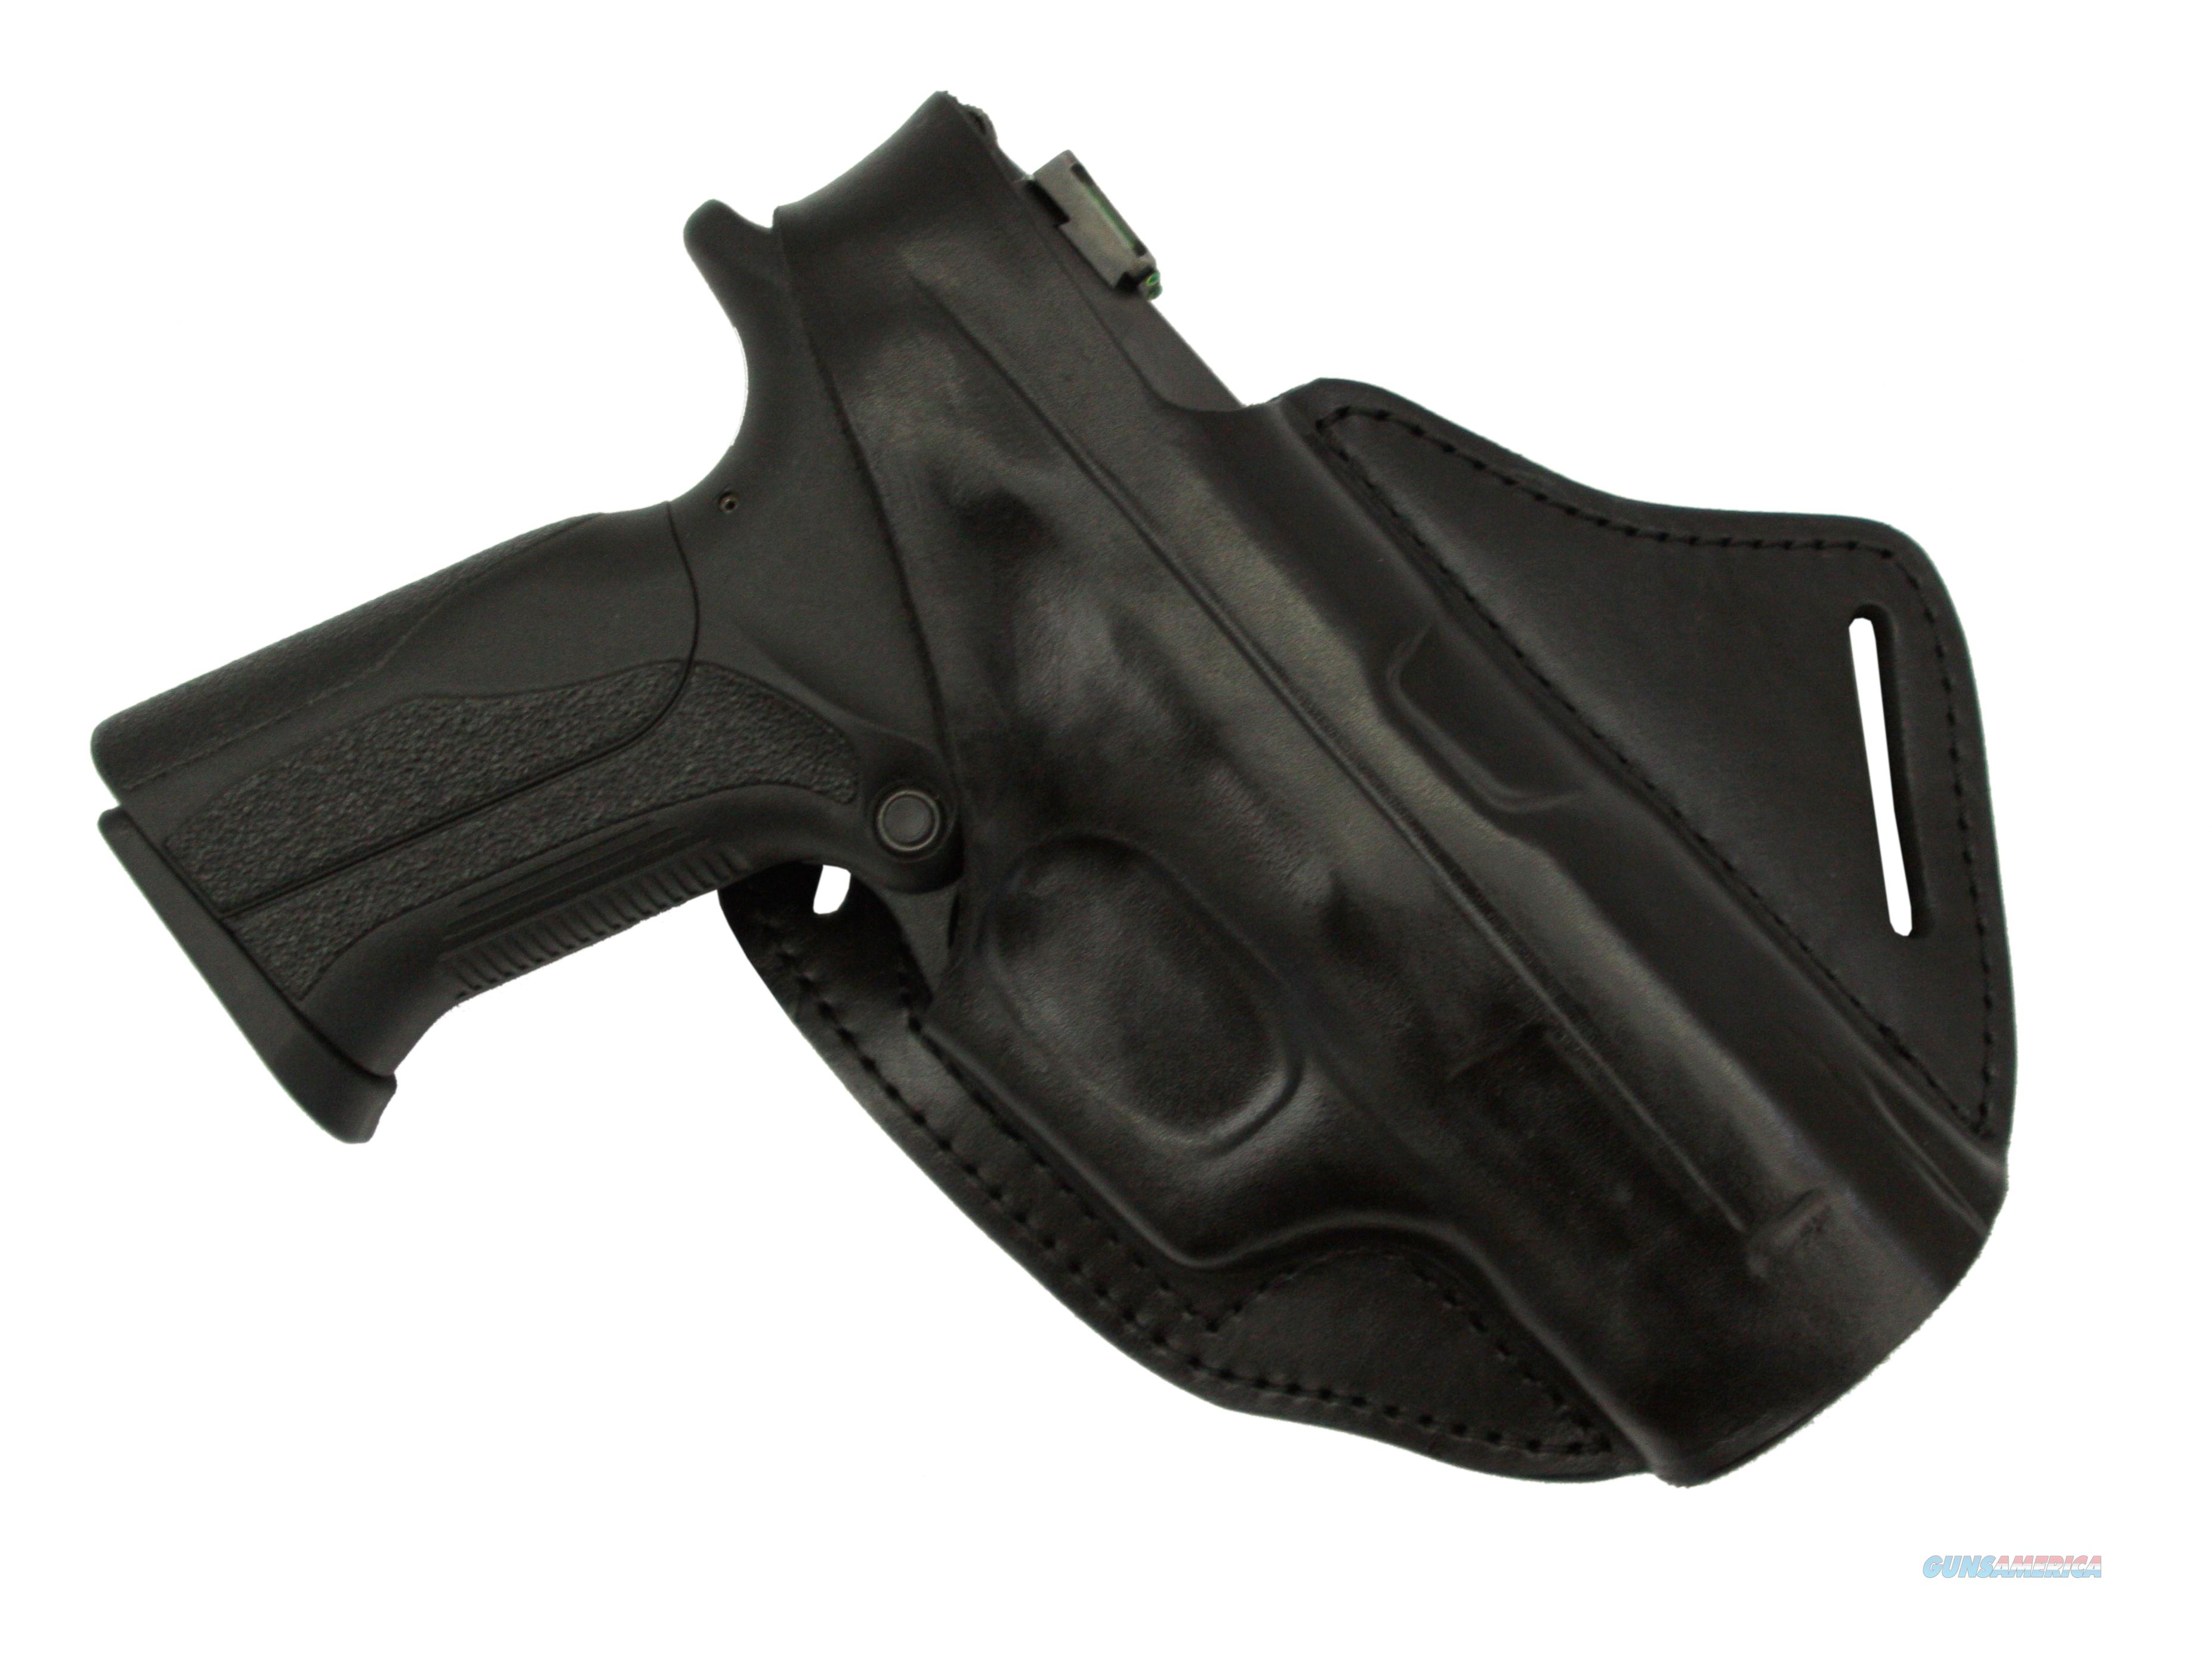 Cross Draw Leather Belt Holster  Glock 17, 22, 31, 37  Non-Guns > Holsters and Gunleather > Concealed Carry